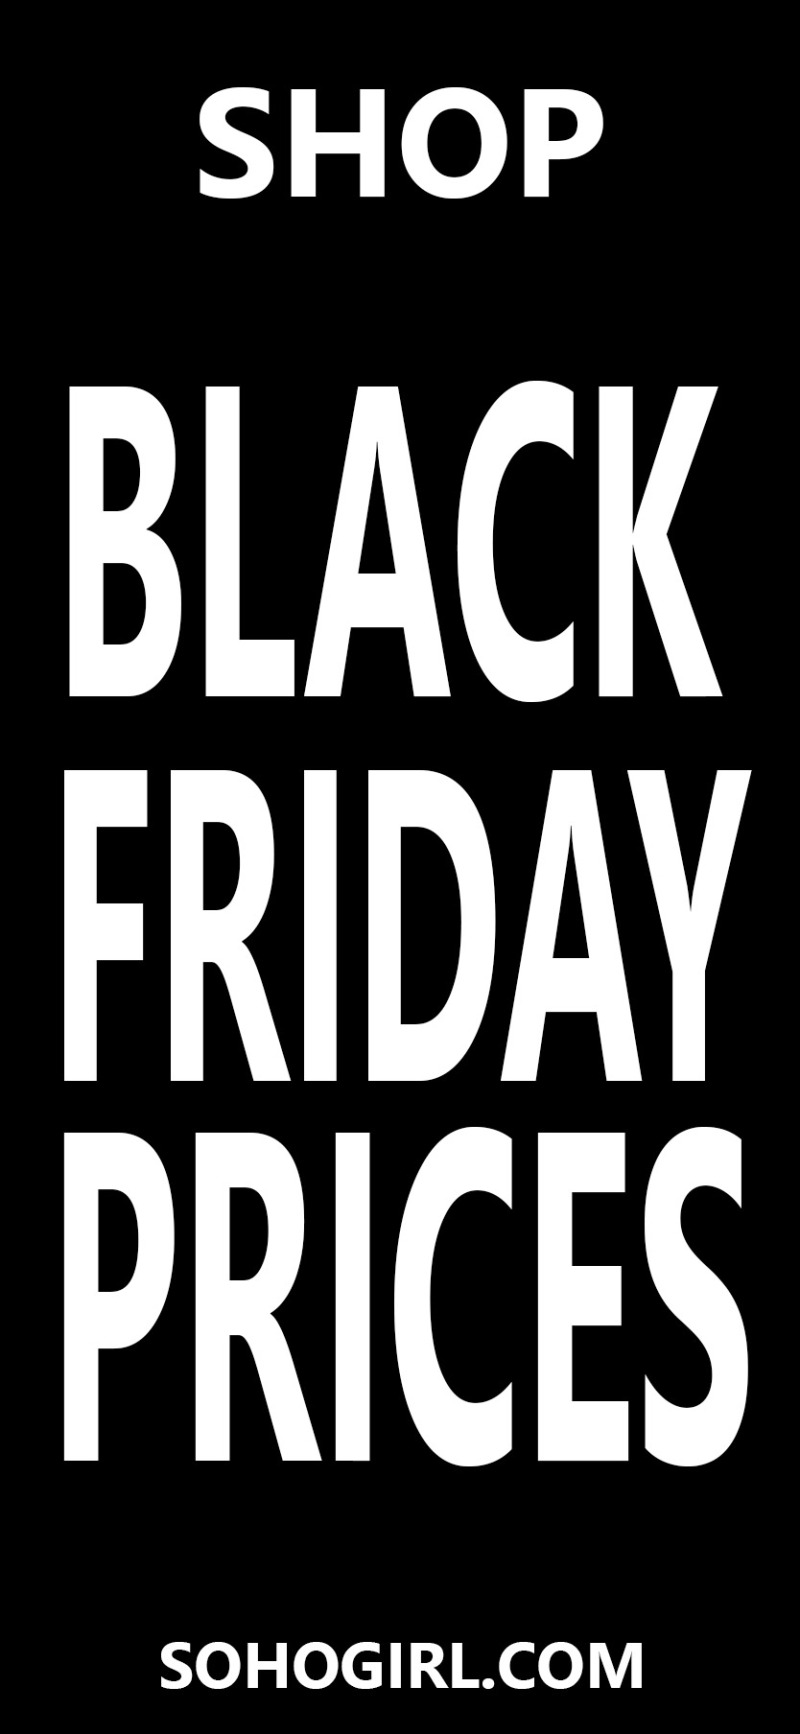 blackfridayprices